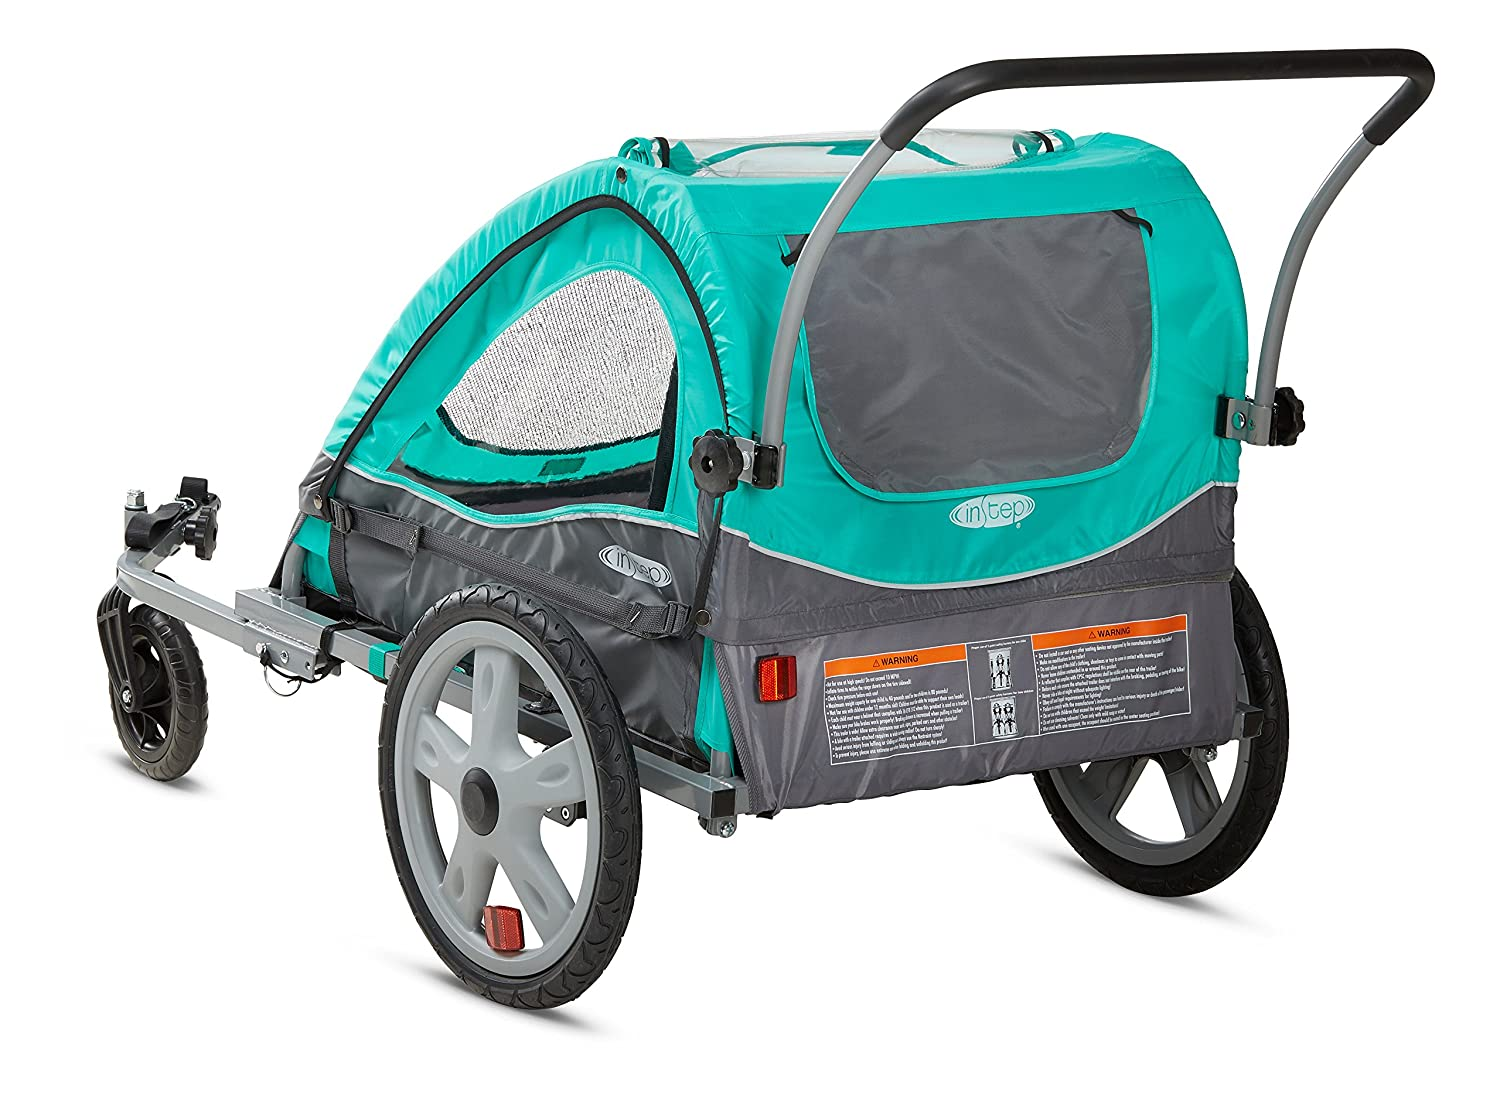 Converts to Stroller//Jogger for Kids and Children Featuring 2-in-1 Canopy and 16-Inch Wheels Instep Quick-N-EZ Double Seat Foldable Tow Behind Bike Trailers Multiple Colors Available